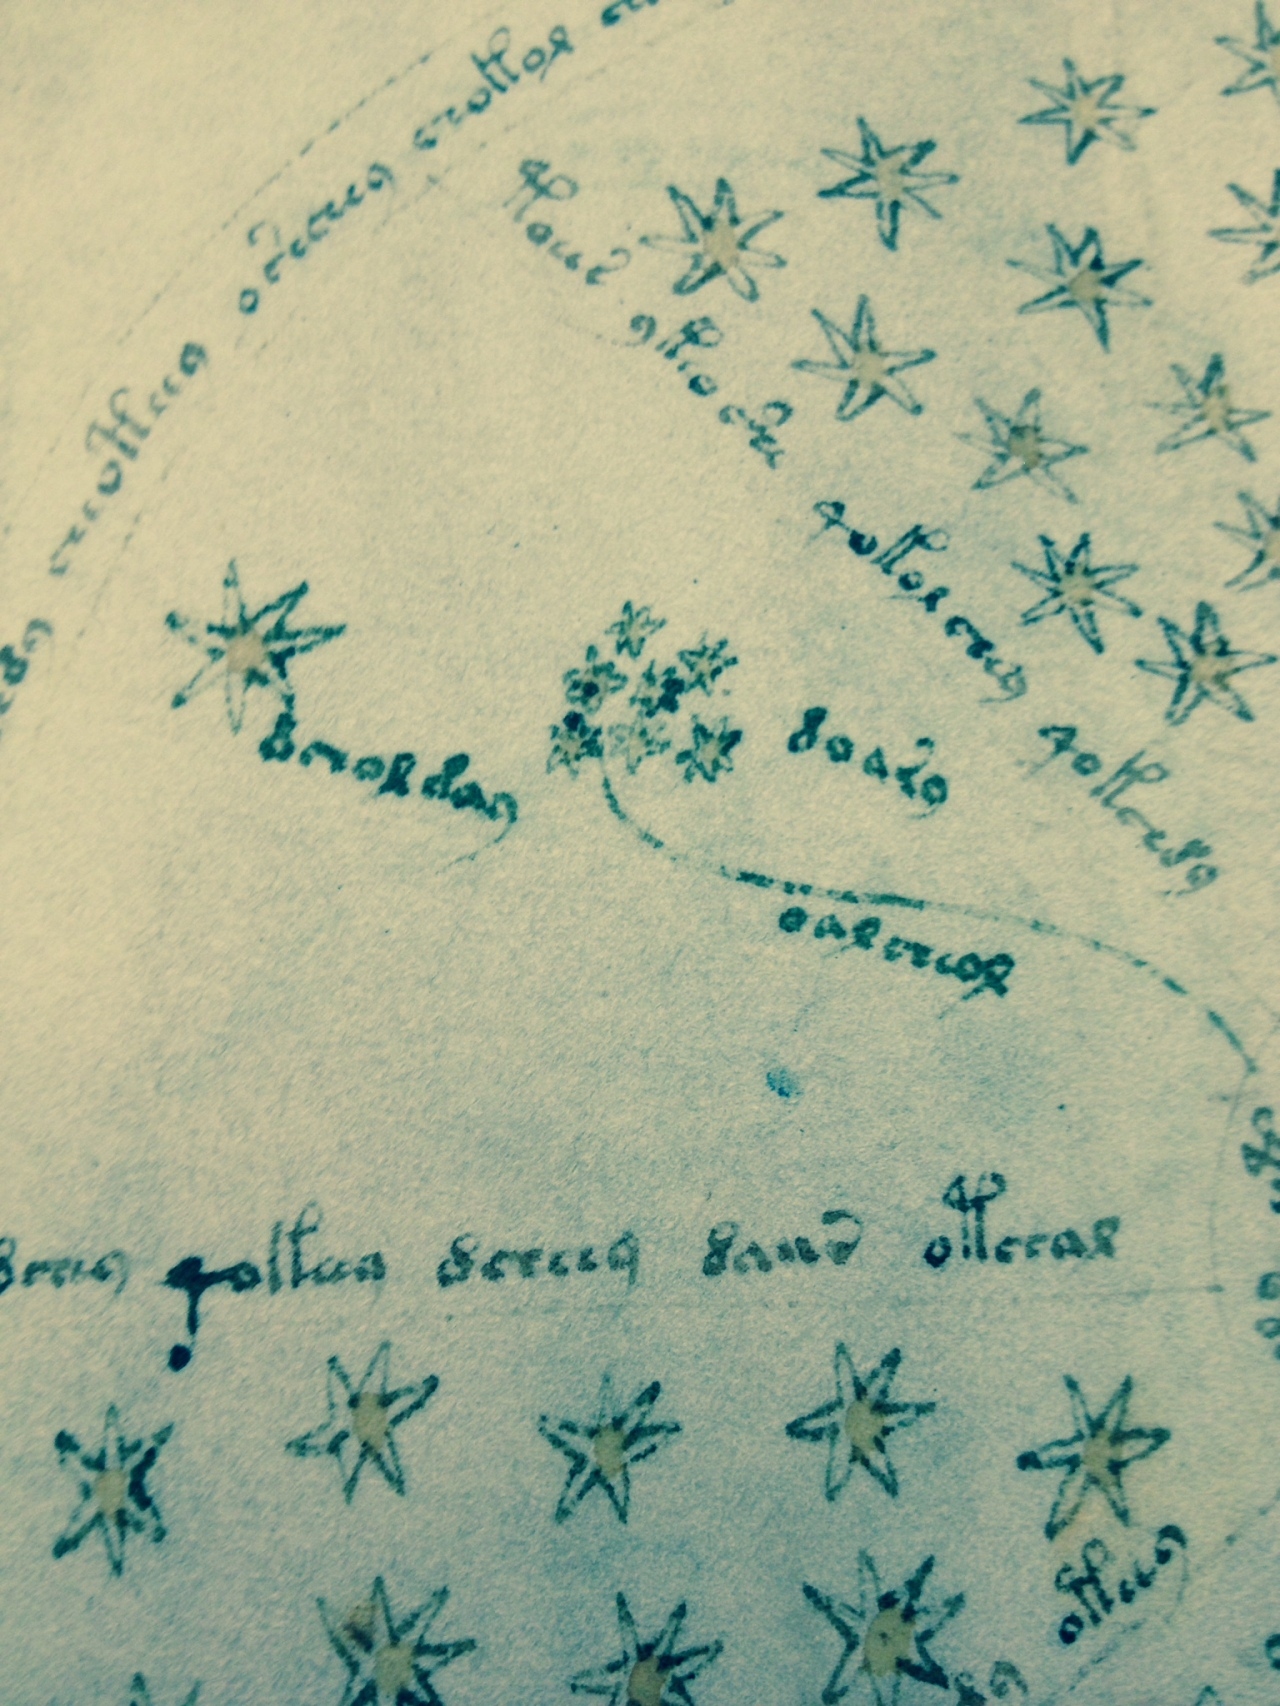 7 Sisters Constellation as found in the Voynich manuscript. Photo by Hillary Raimo Yale University 11/19/2013